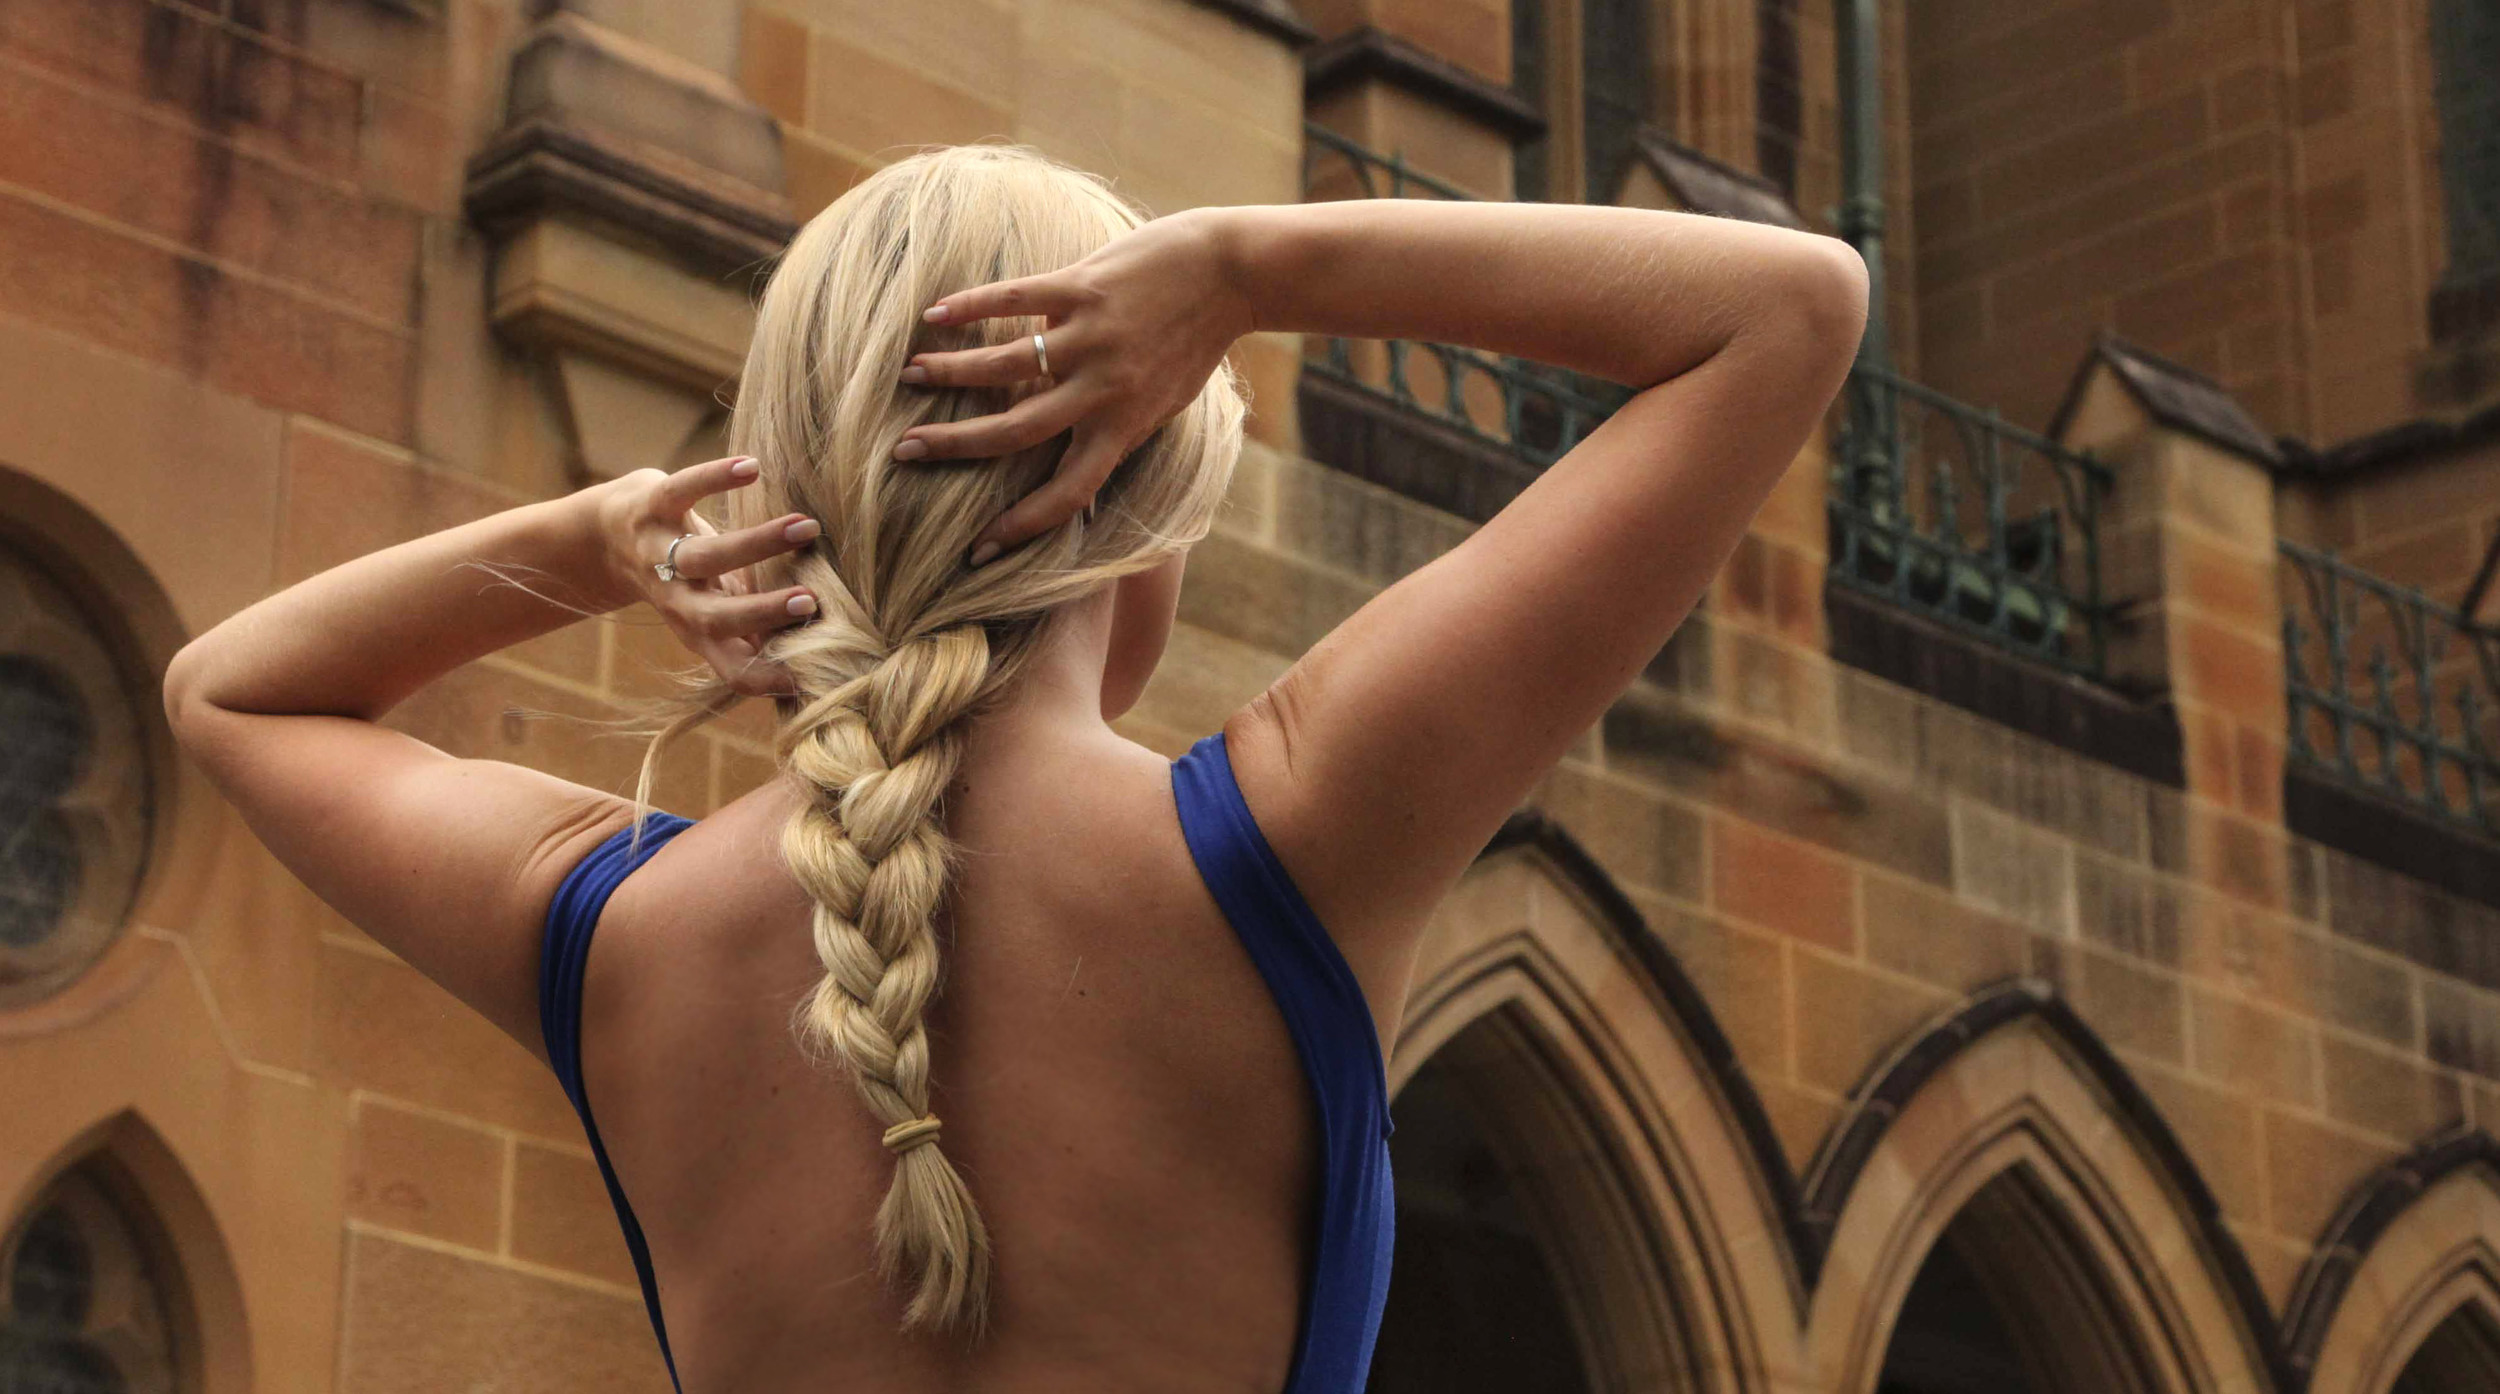 Hands up, blue dress and blonde braid